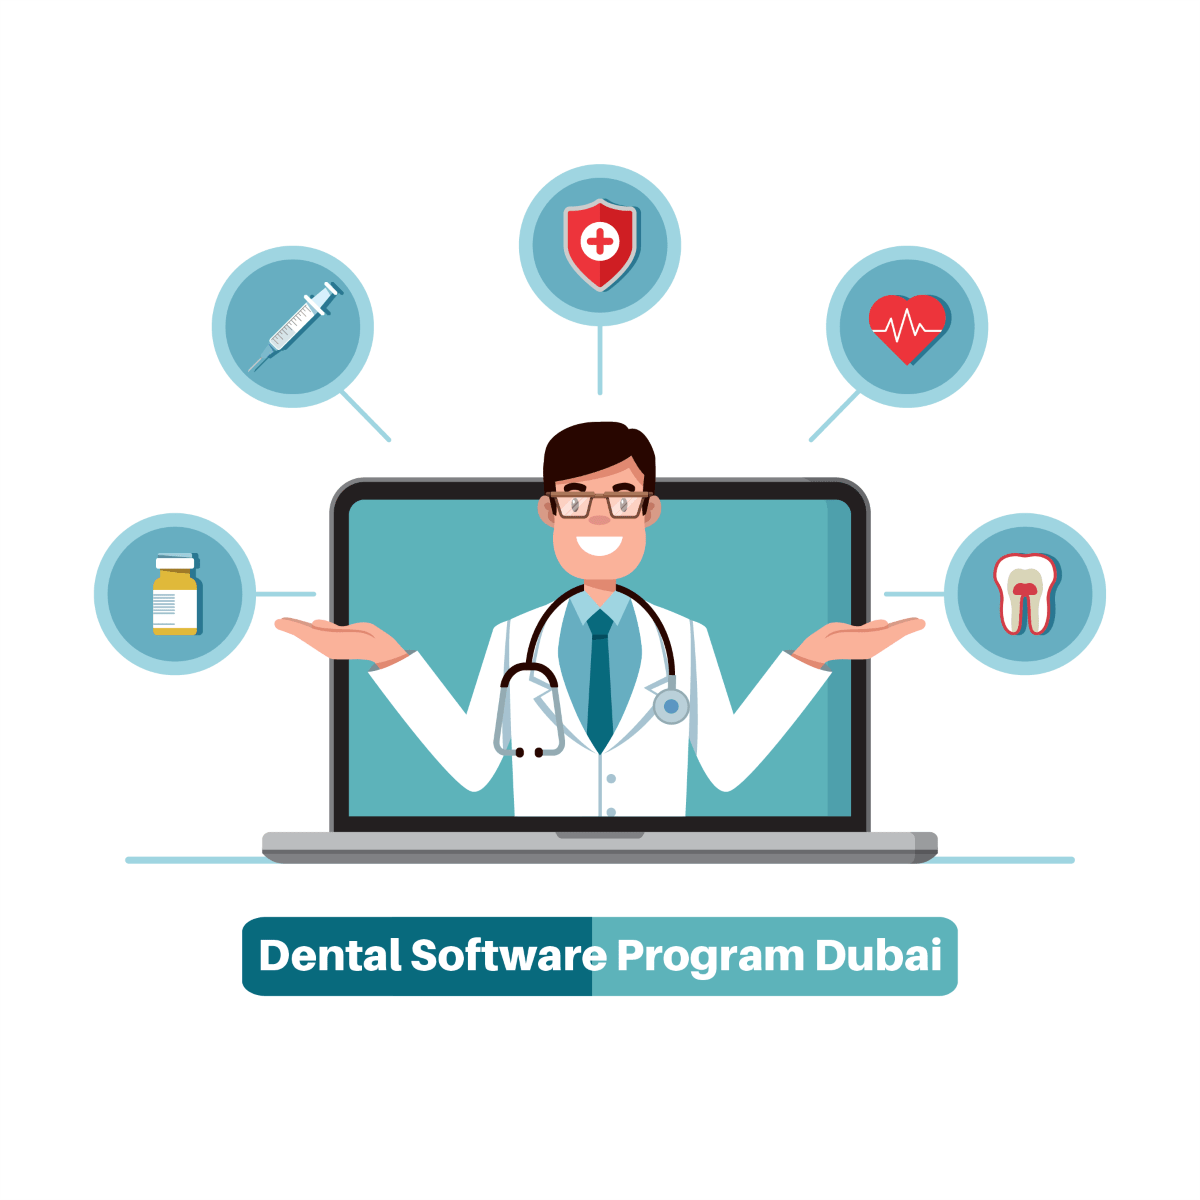 Dental Software Program Dubai